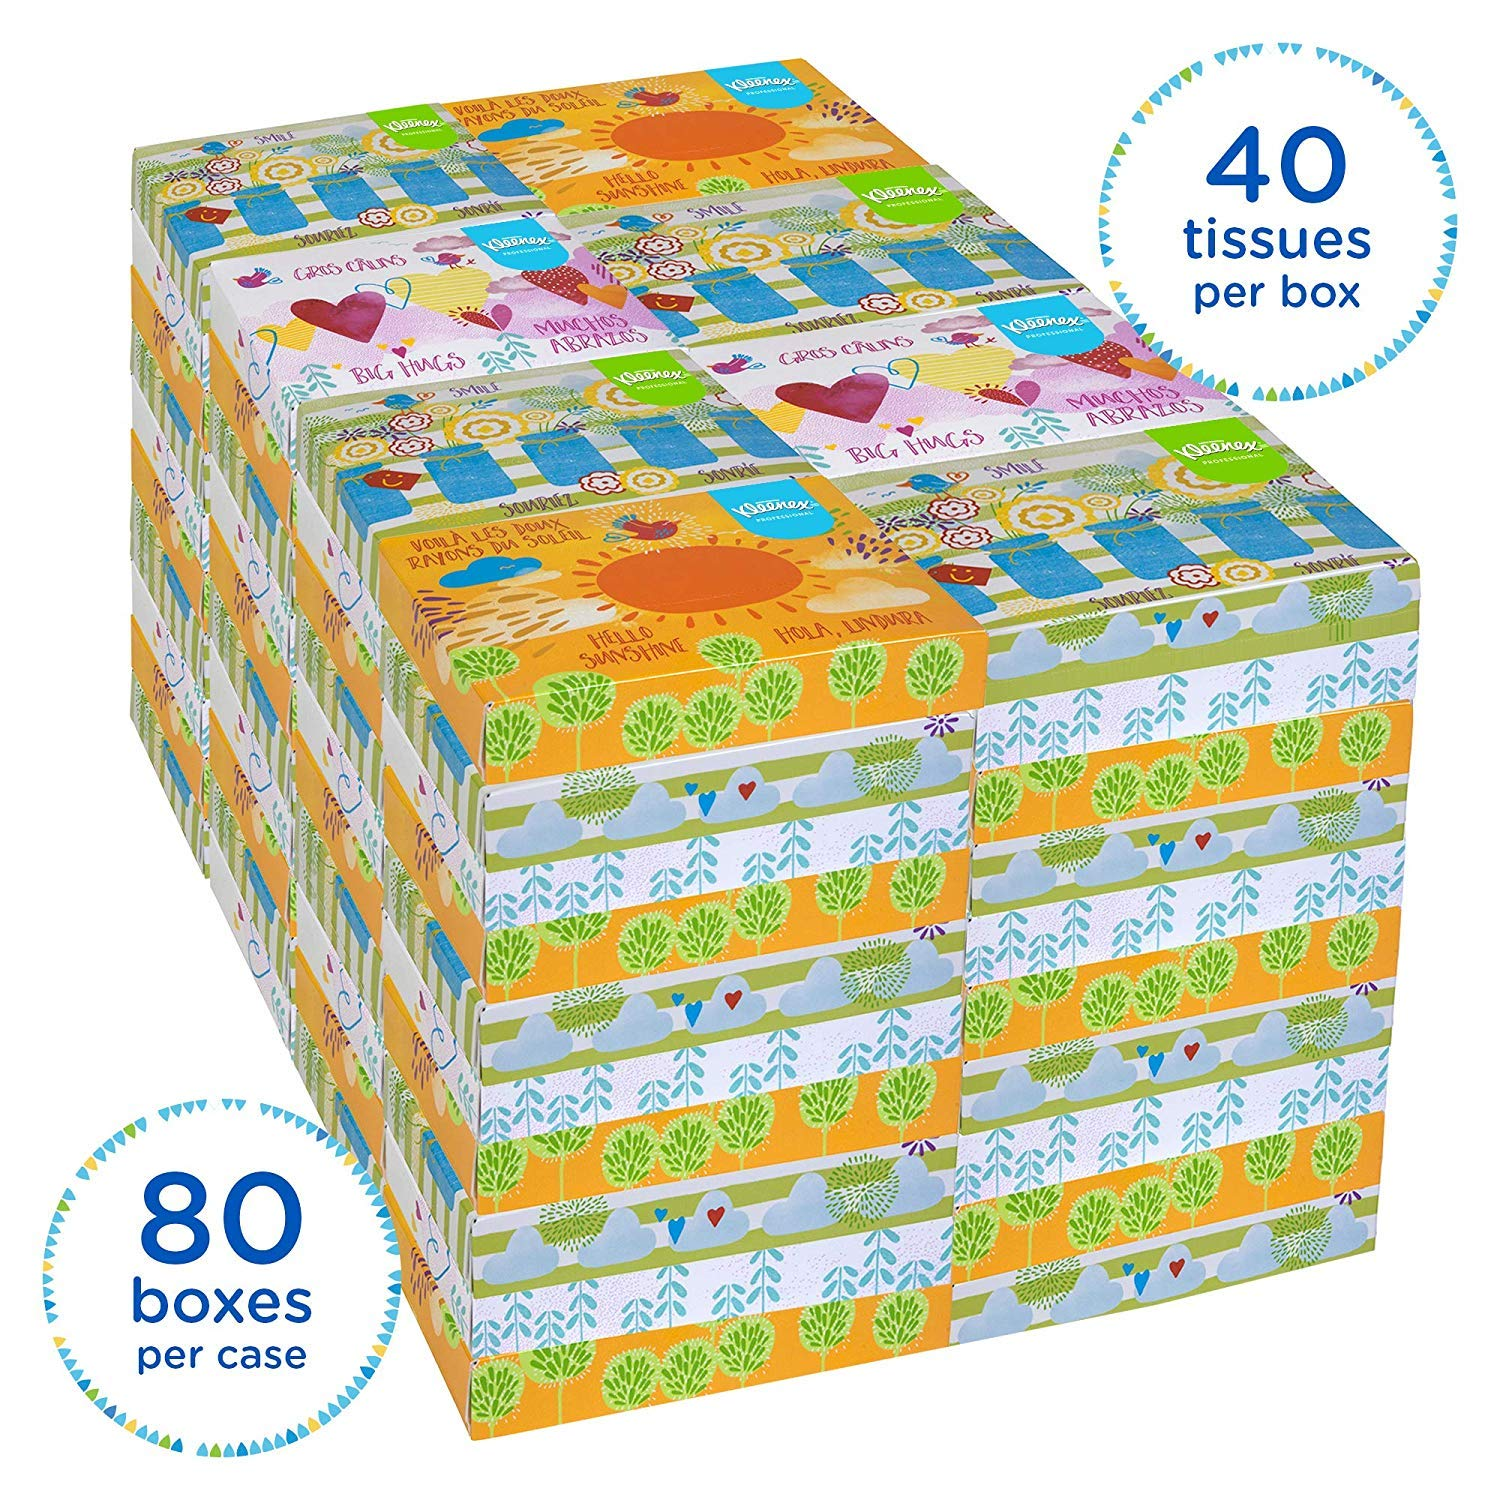 Kleenex Professional Facial Tissue for Business (21195), Flat Tissue Boxes, 80 Junior Boxes/Case, 40 Tissues/Box by Kimberly-Clark Professional (Image #3)